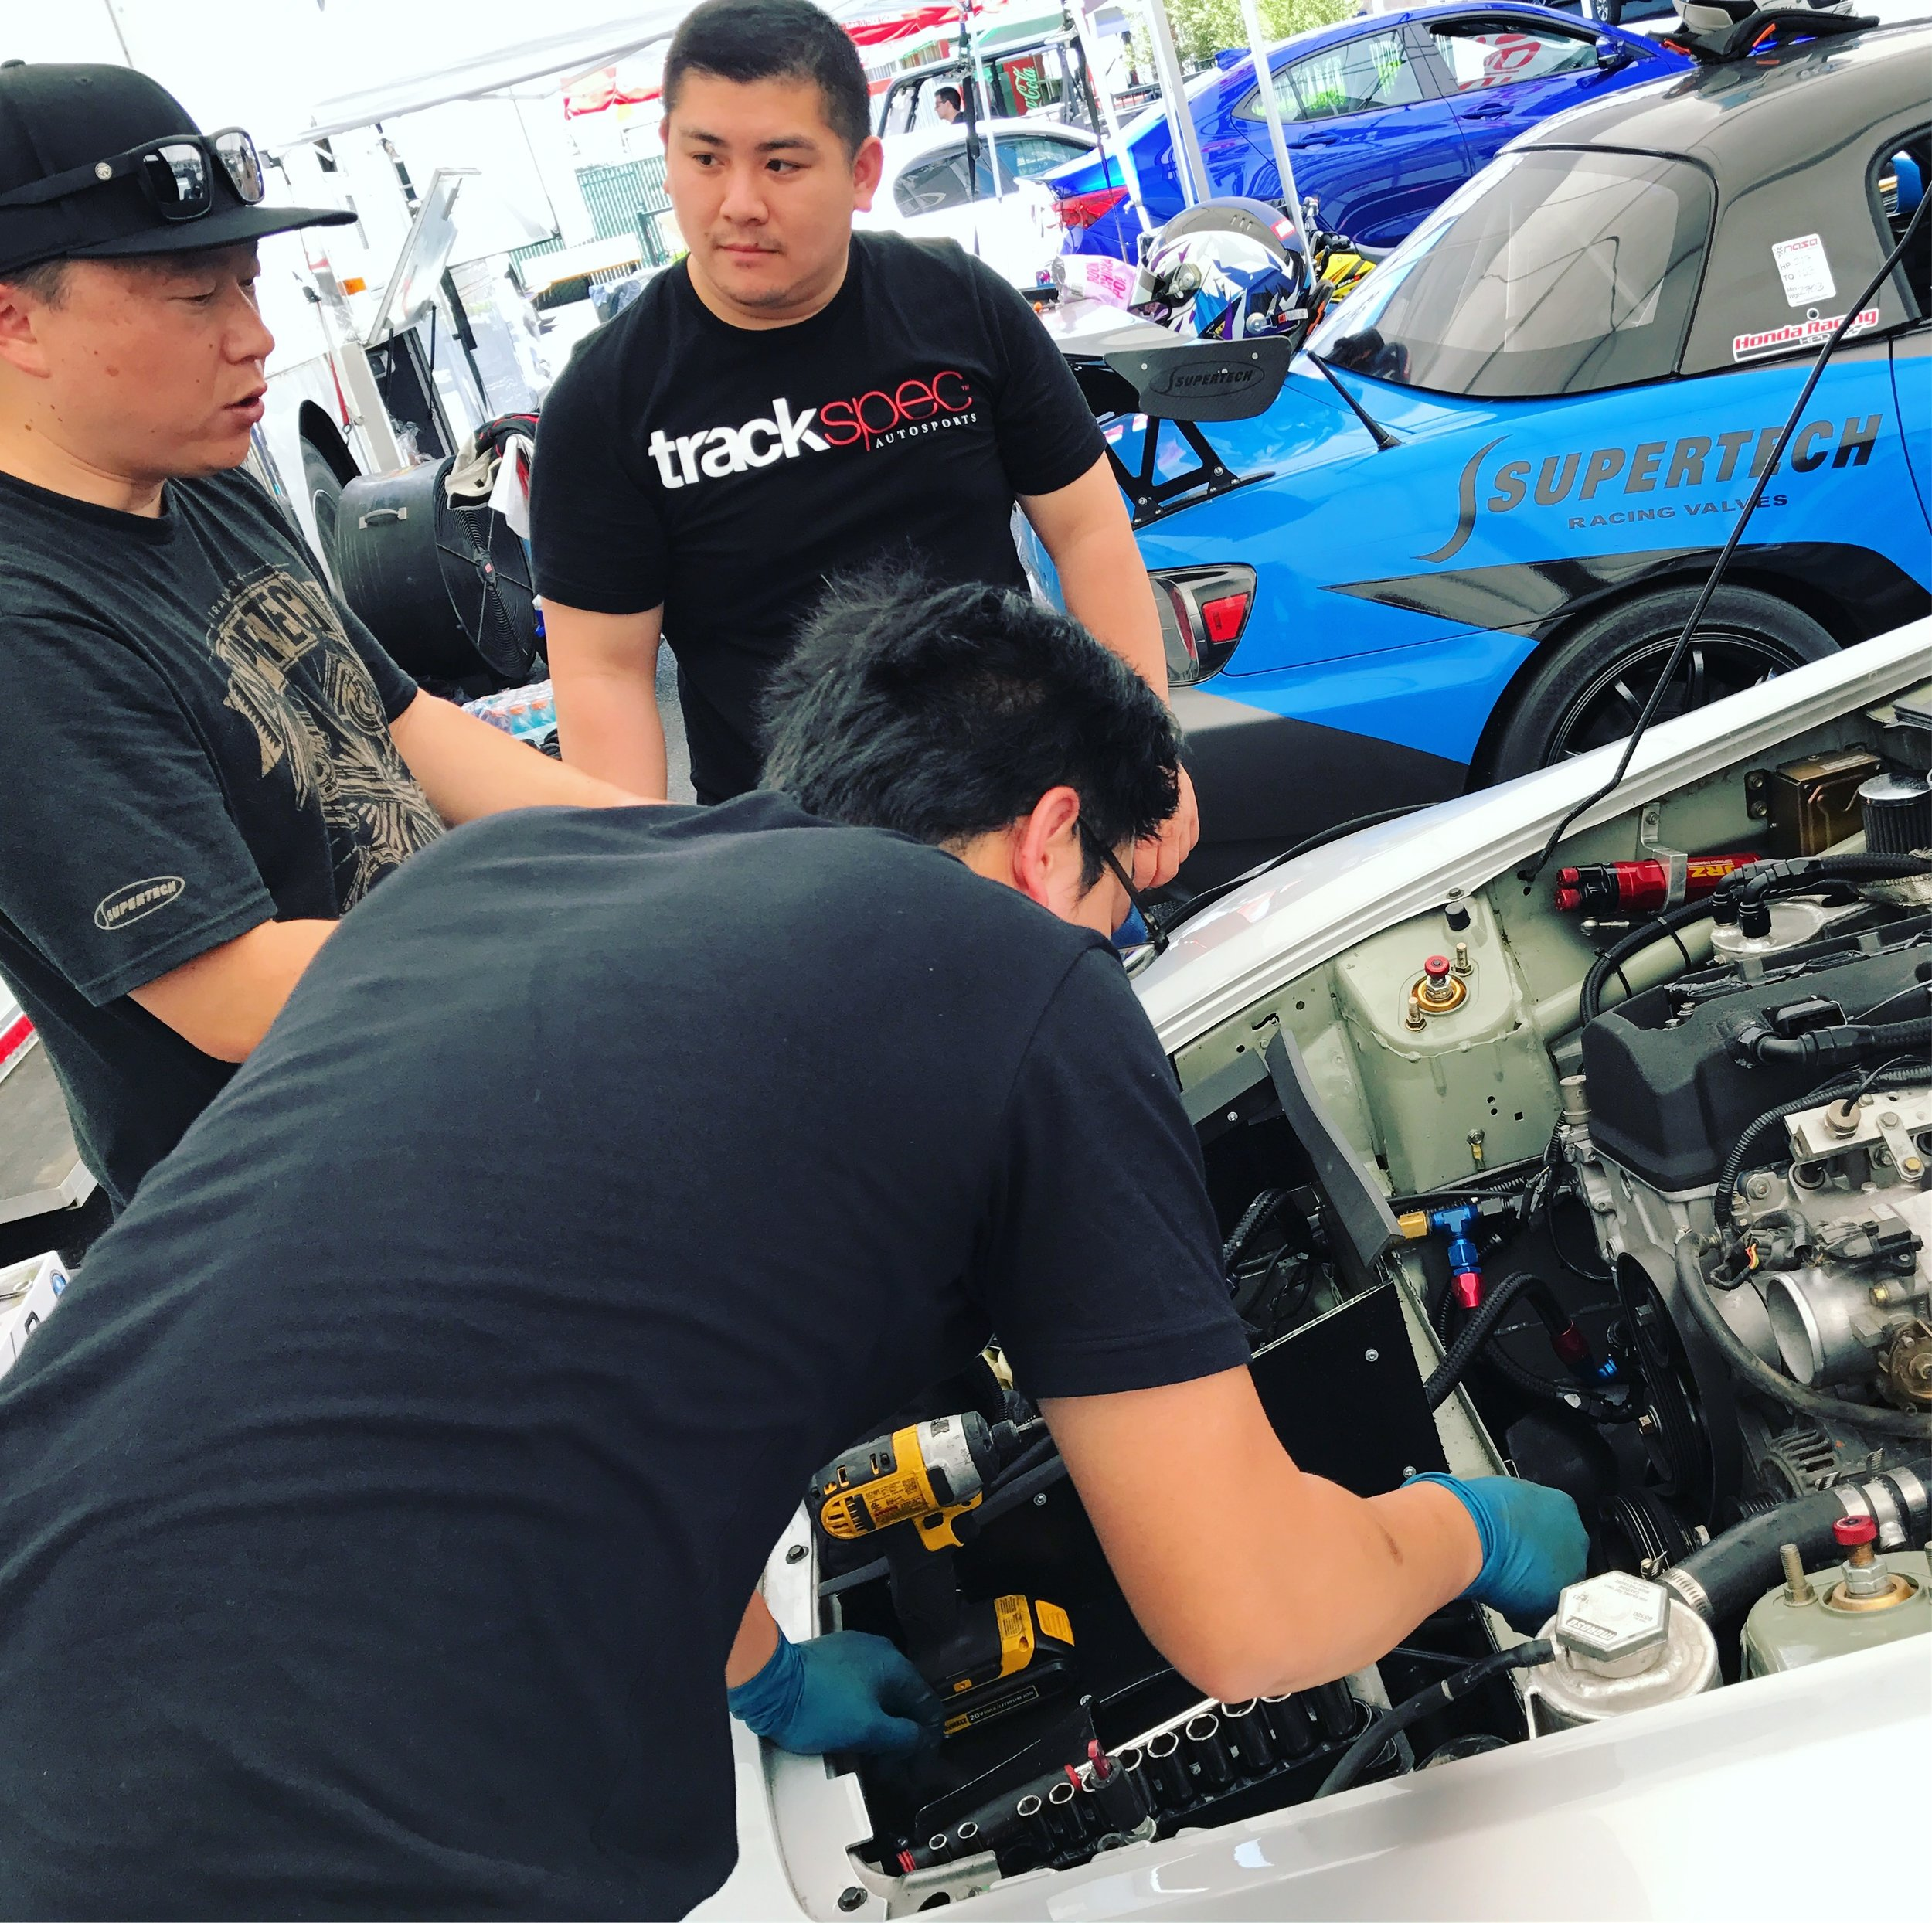 Drew and Son working with my friend and master engine tuner, Jei Chang from Blacktrax Performance